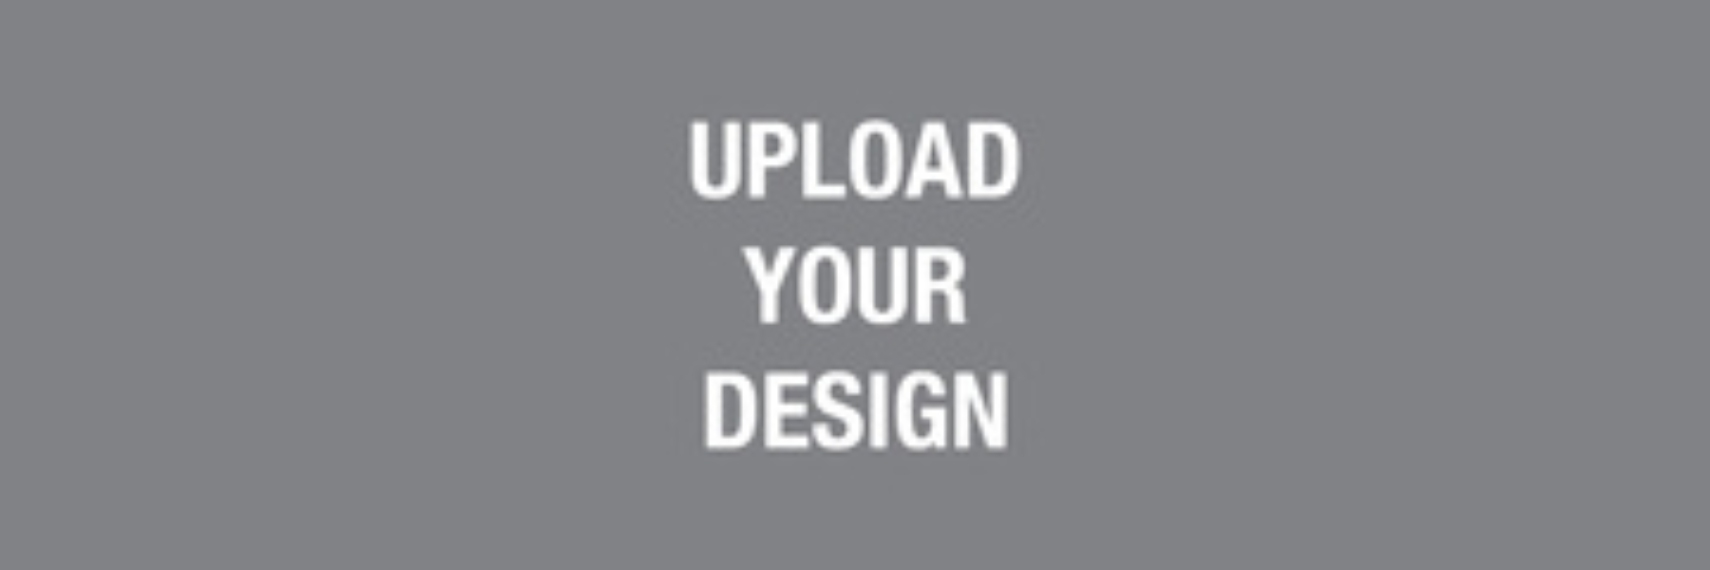 Full Photo 1x3 Adhesive Banner, Home Décor -Upload Your Own